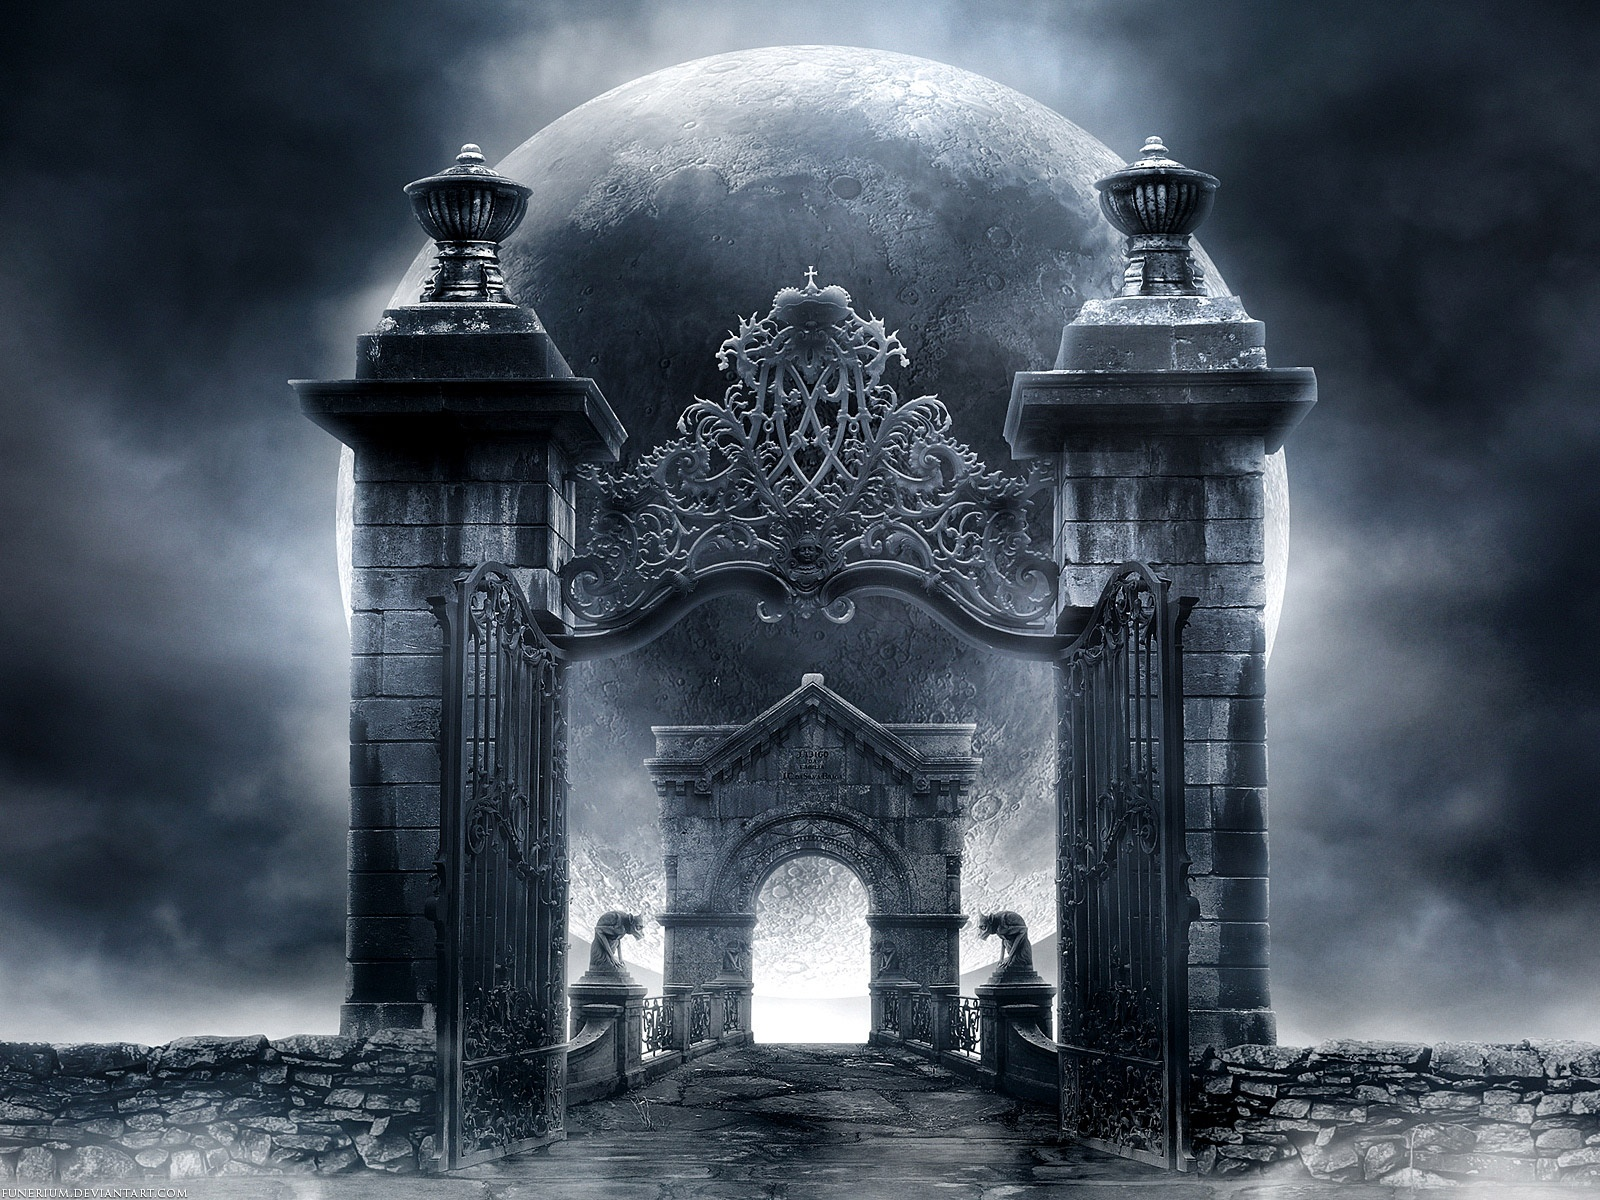 gothic gate Computer Wallpapers Desktop Backgrounds 1600x1200 ID 1600x1200